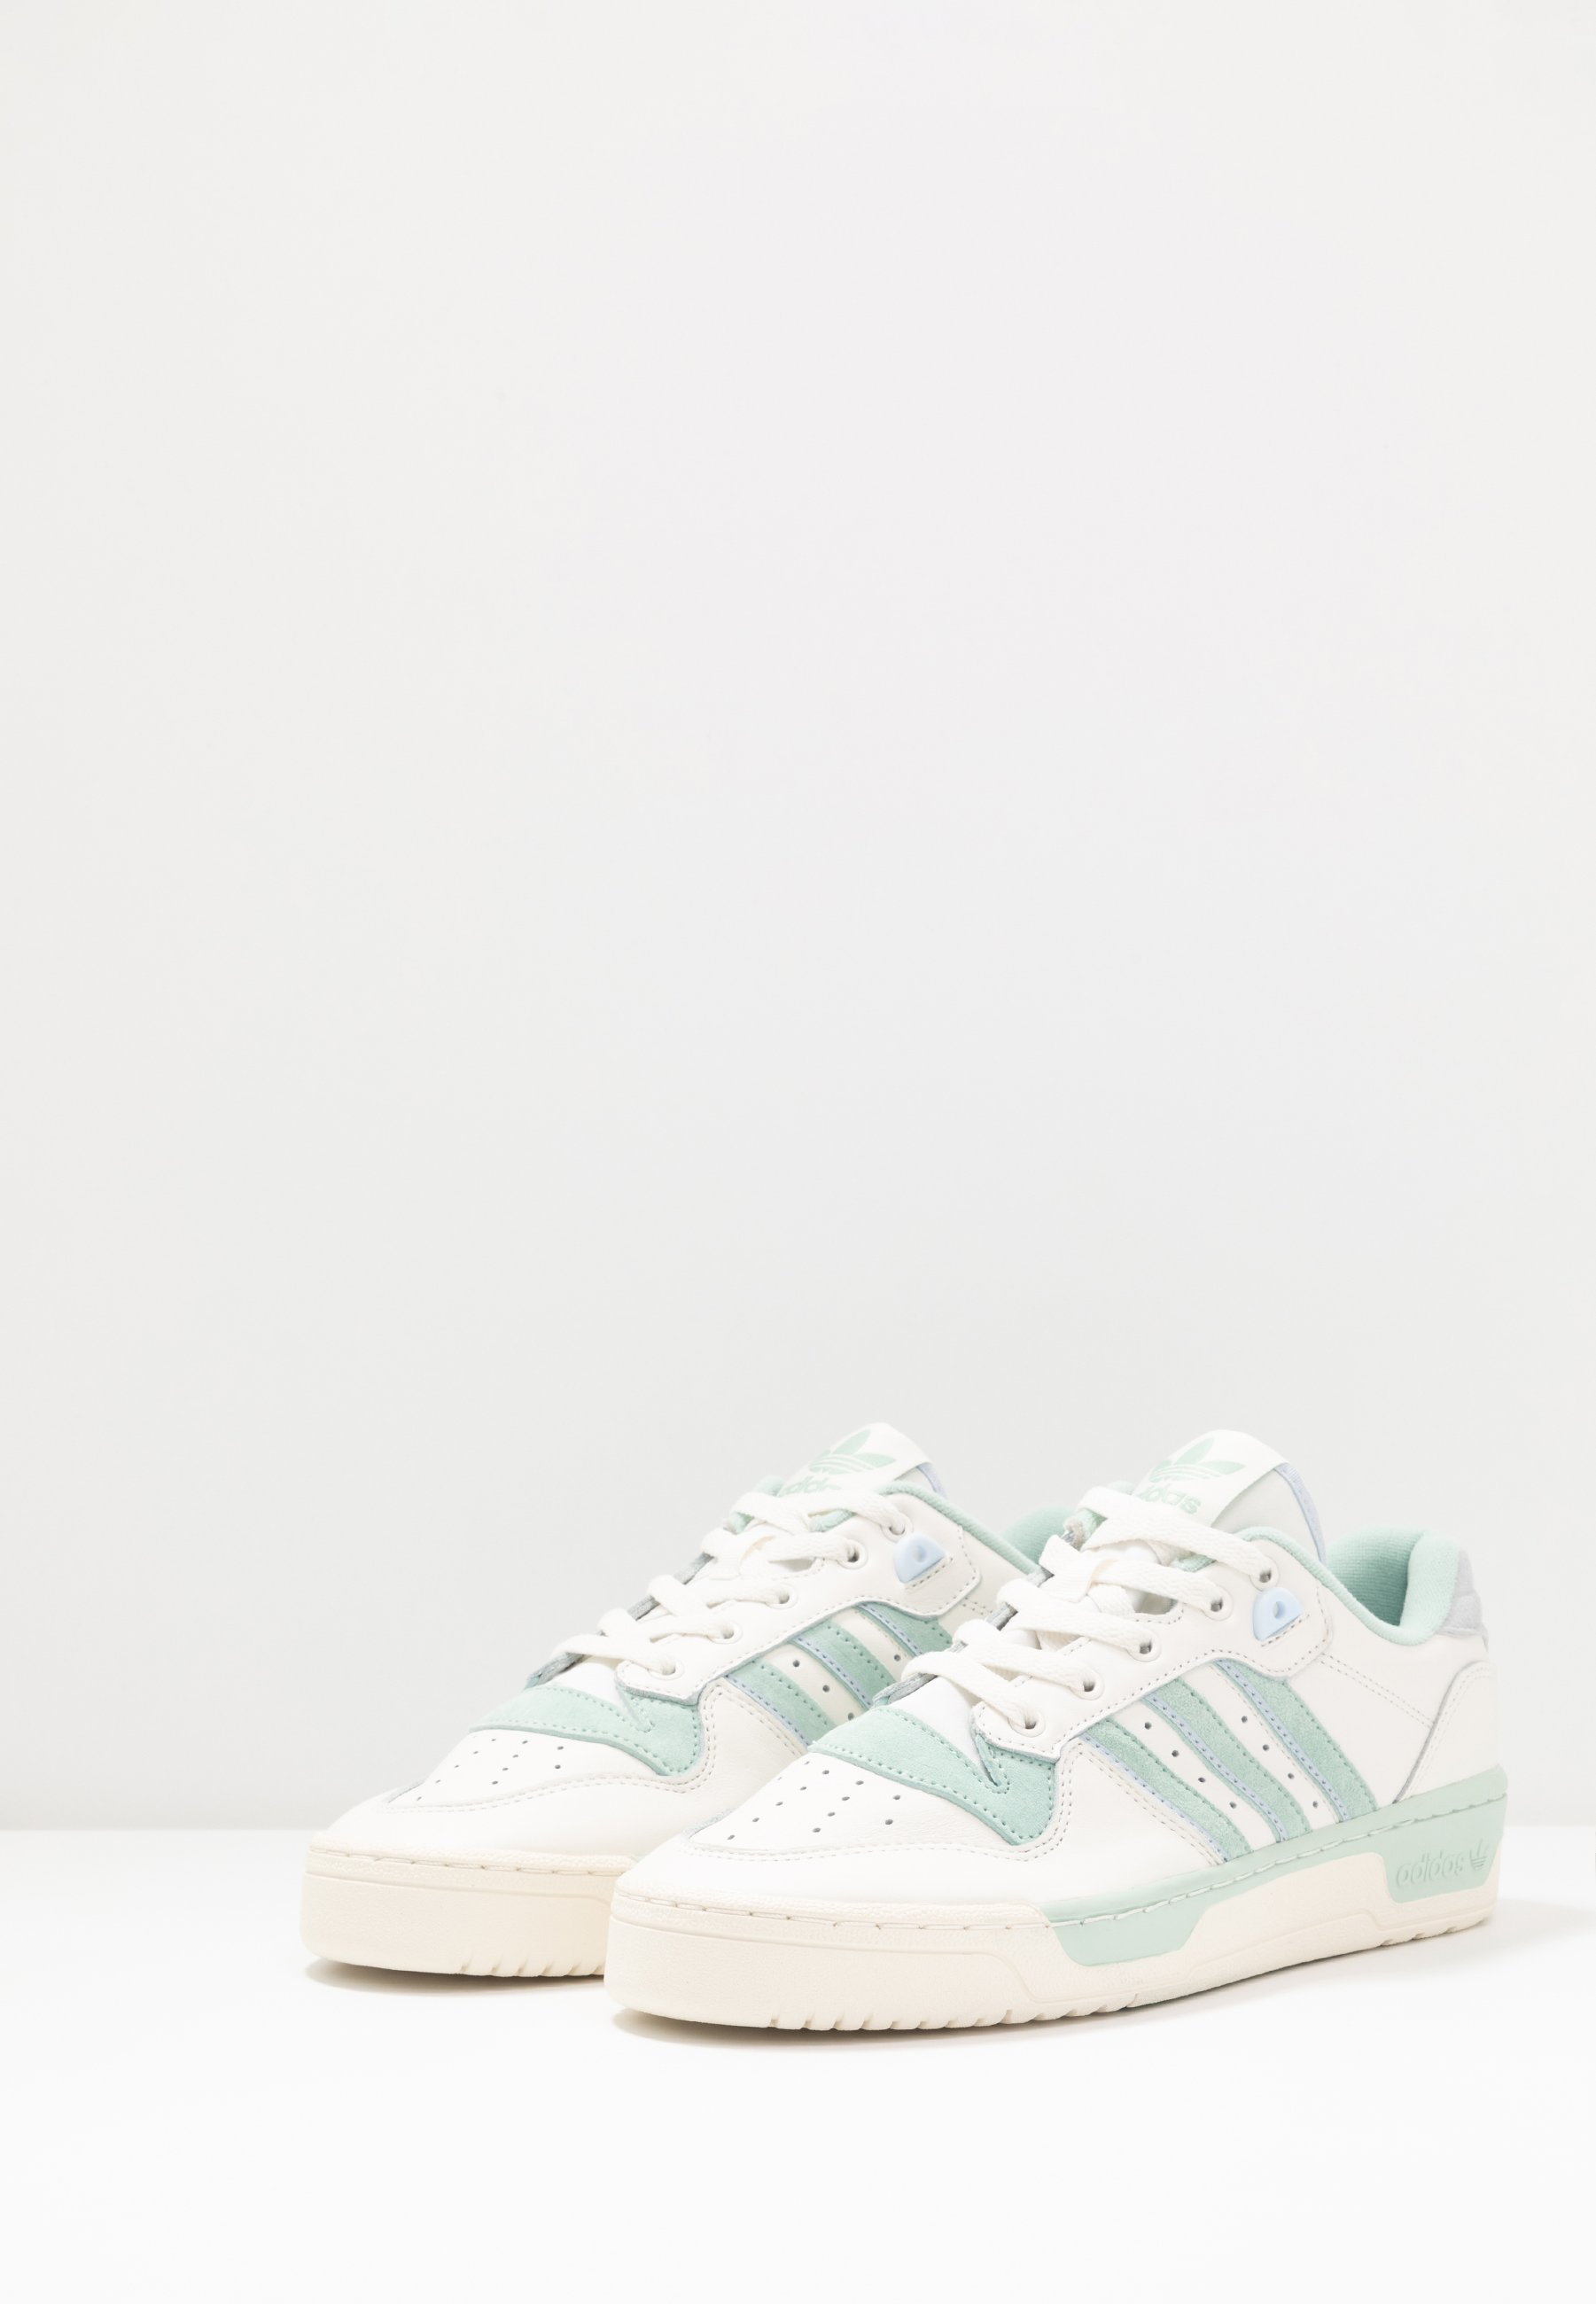 Geringster Preis adidas Originals RIVALRY - Sneaker low - cloud white/offwhite/light blue | Damenbekleidung 2020